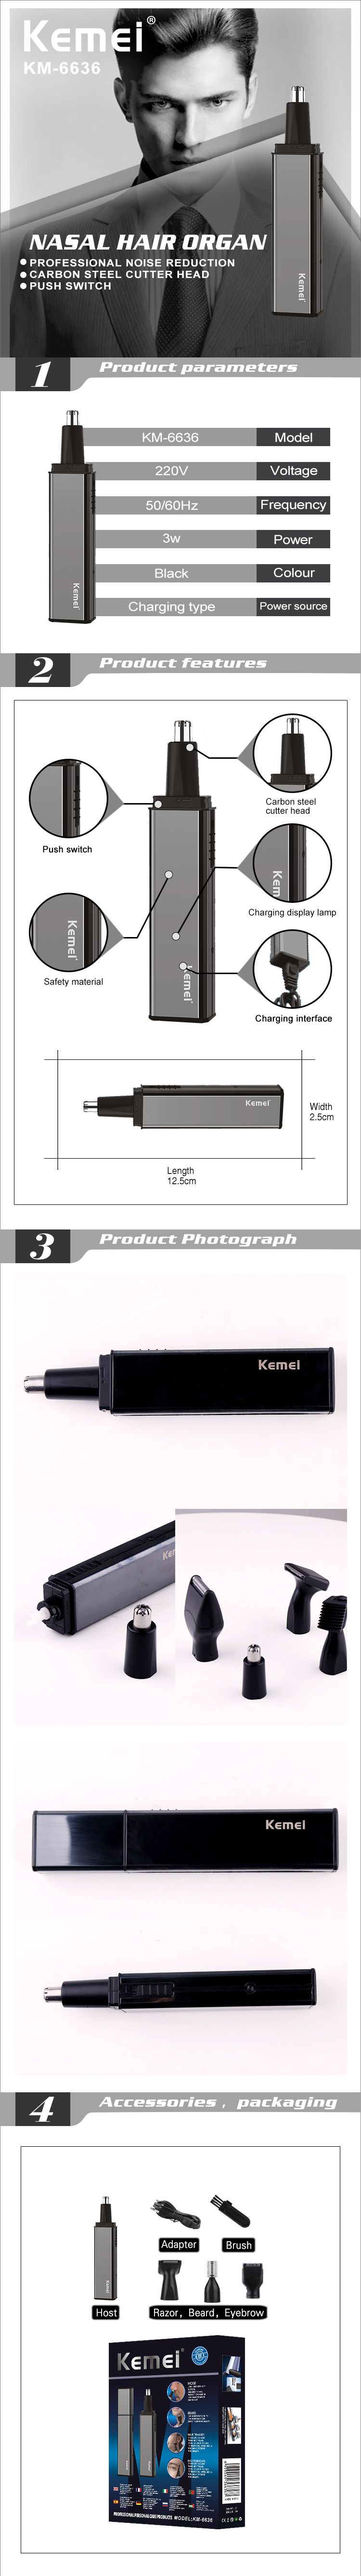 Kemei KM-6636 4 in1 Electric Ear Nose Hair Trimmer Shaver Clipper Cleaner Shaving Safe Face Care Shaving Device